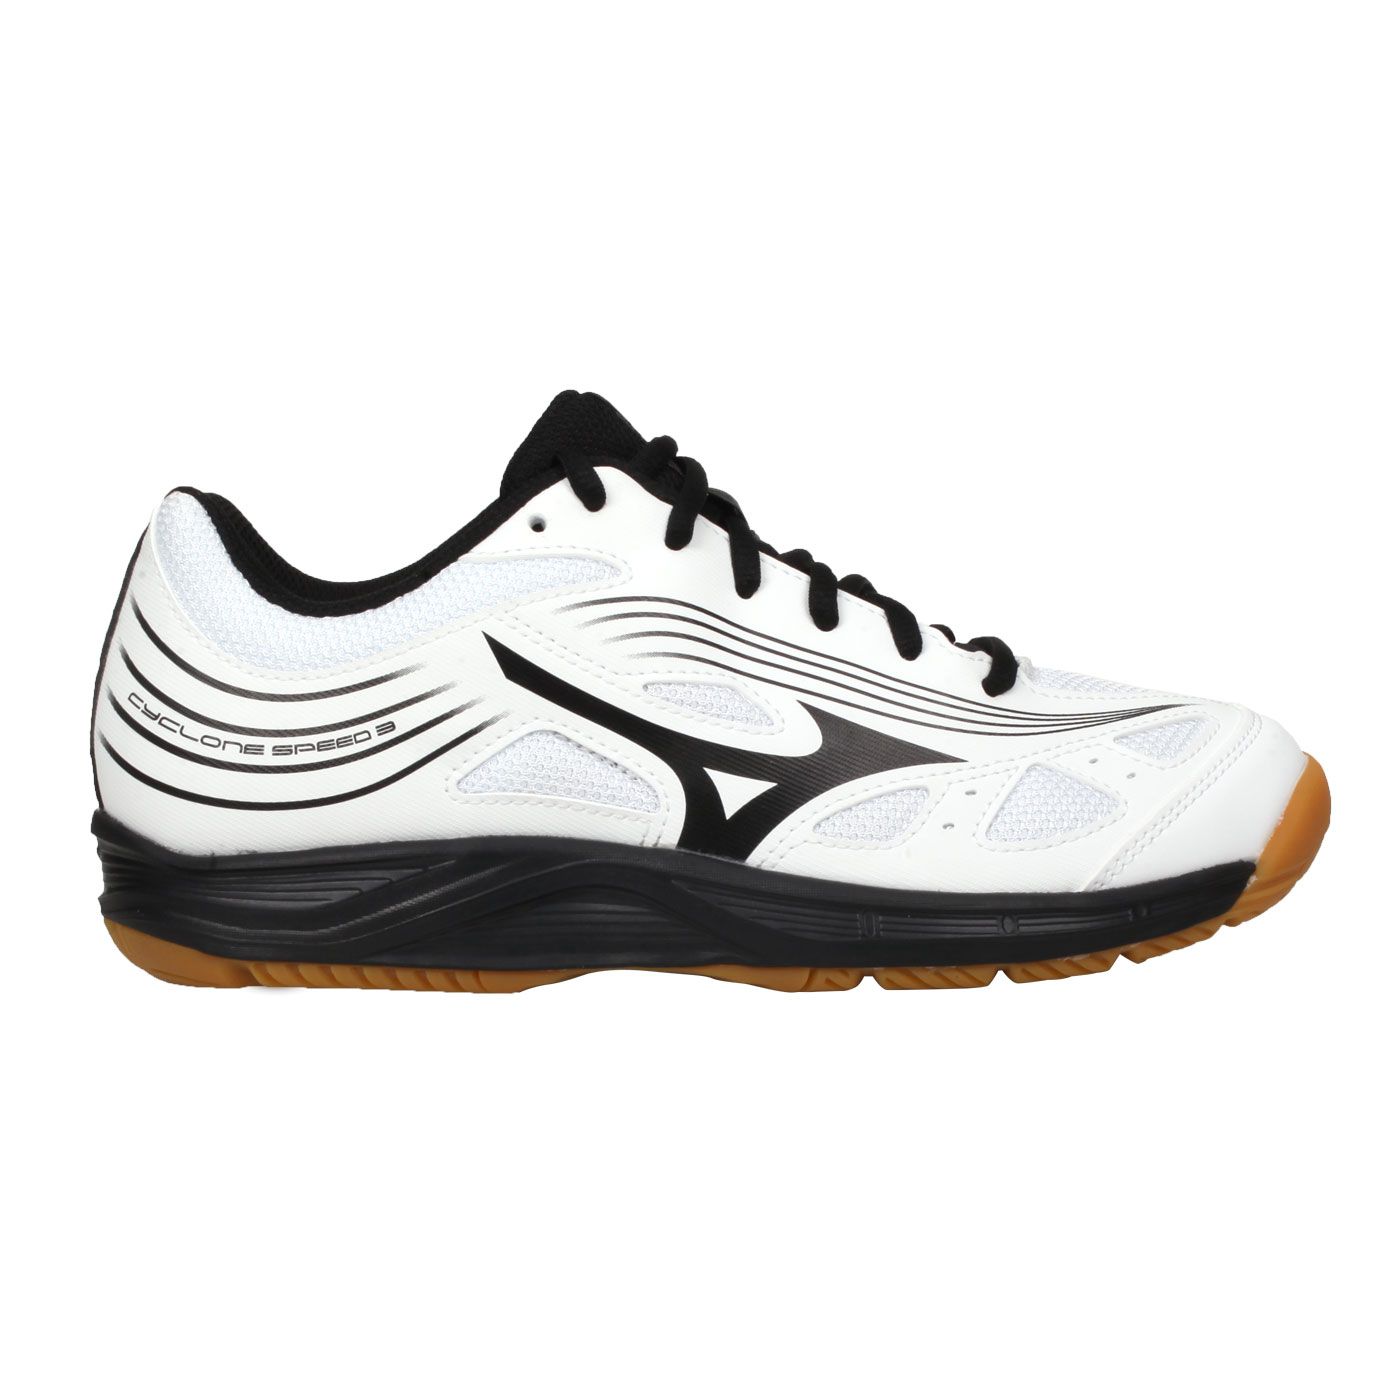 MIZUNO 女款排球鞋  @CYCLONE SPEED 3@V1GC218009